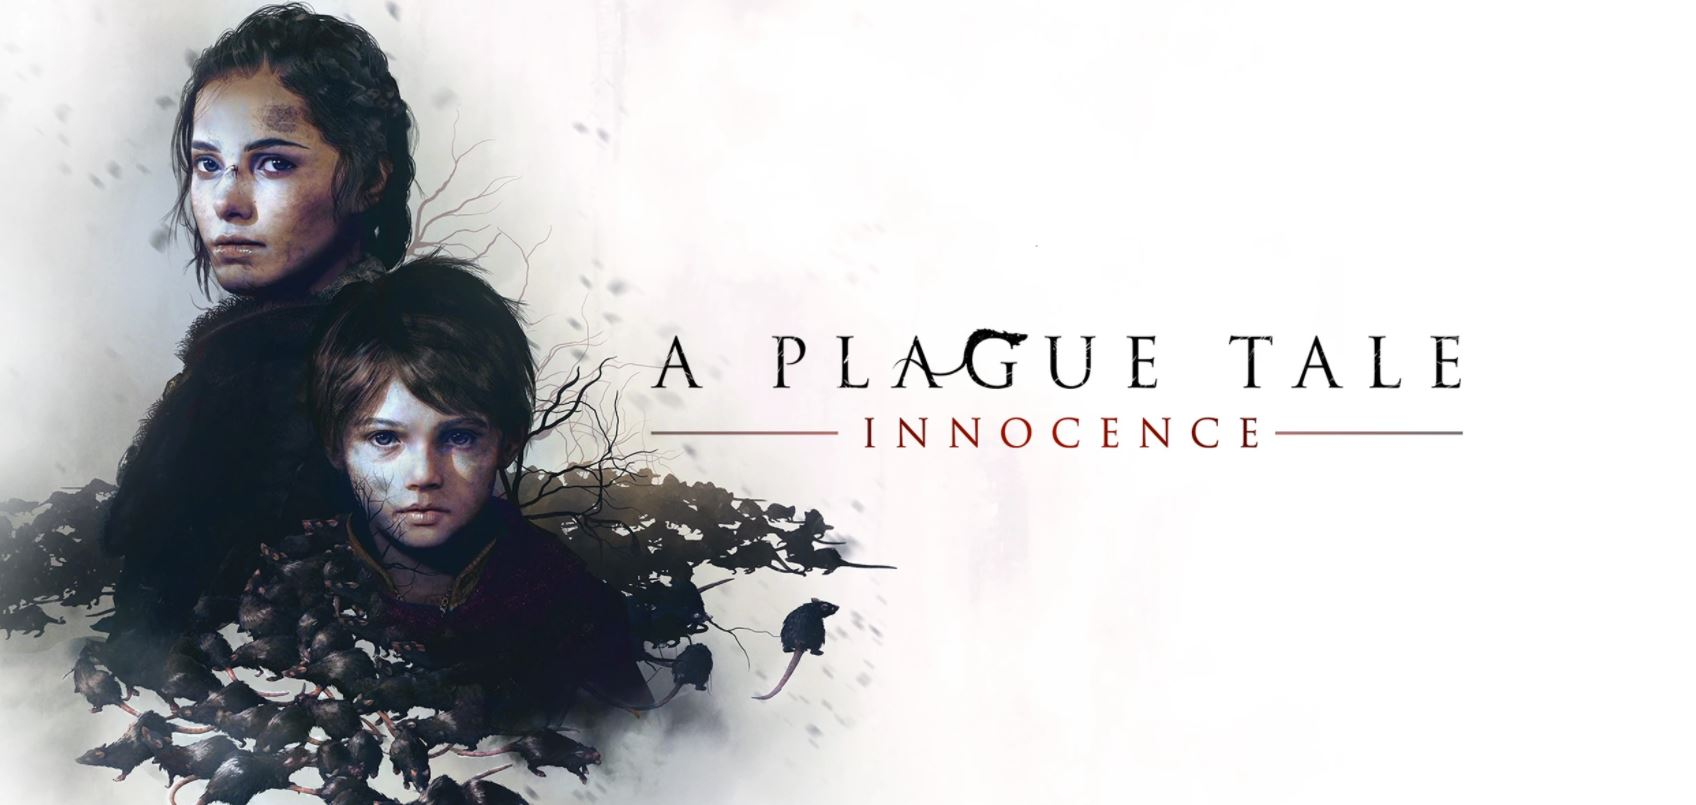 A Plague Tale: Innocence now available on Xbox Series X|S and PlayStation 5 up to 4K UHD, and as a Cloud Version on Nintendo Switch